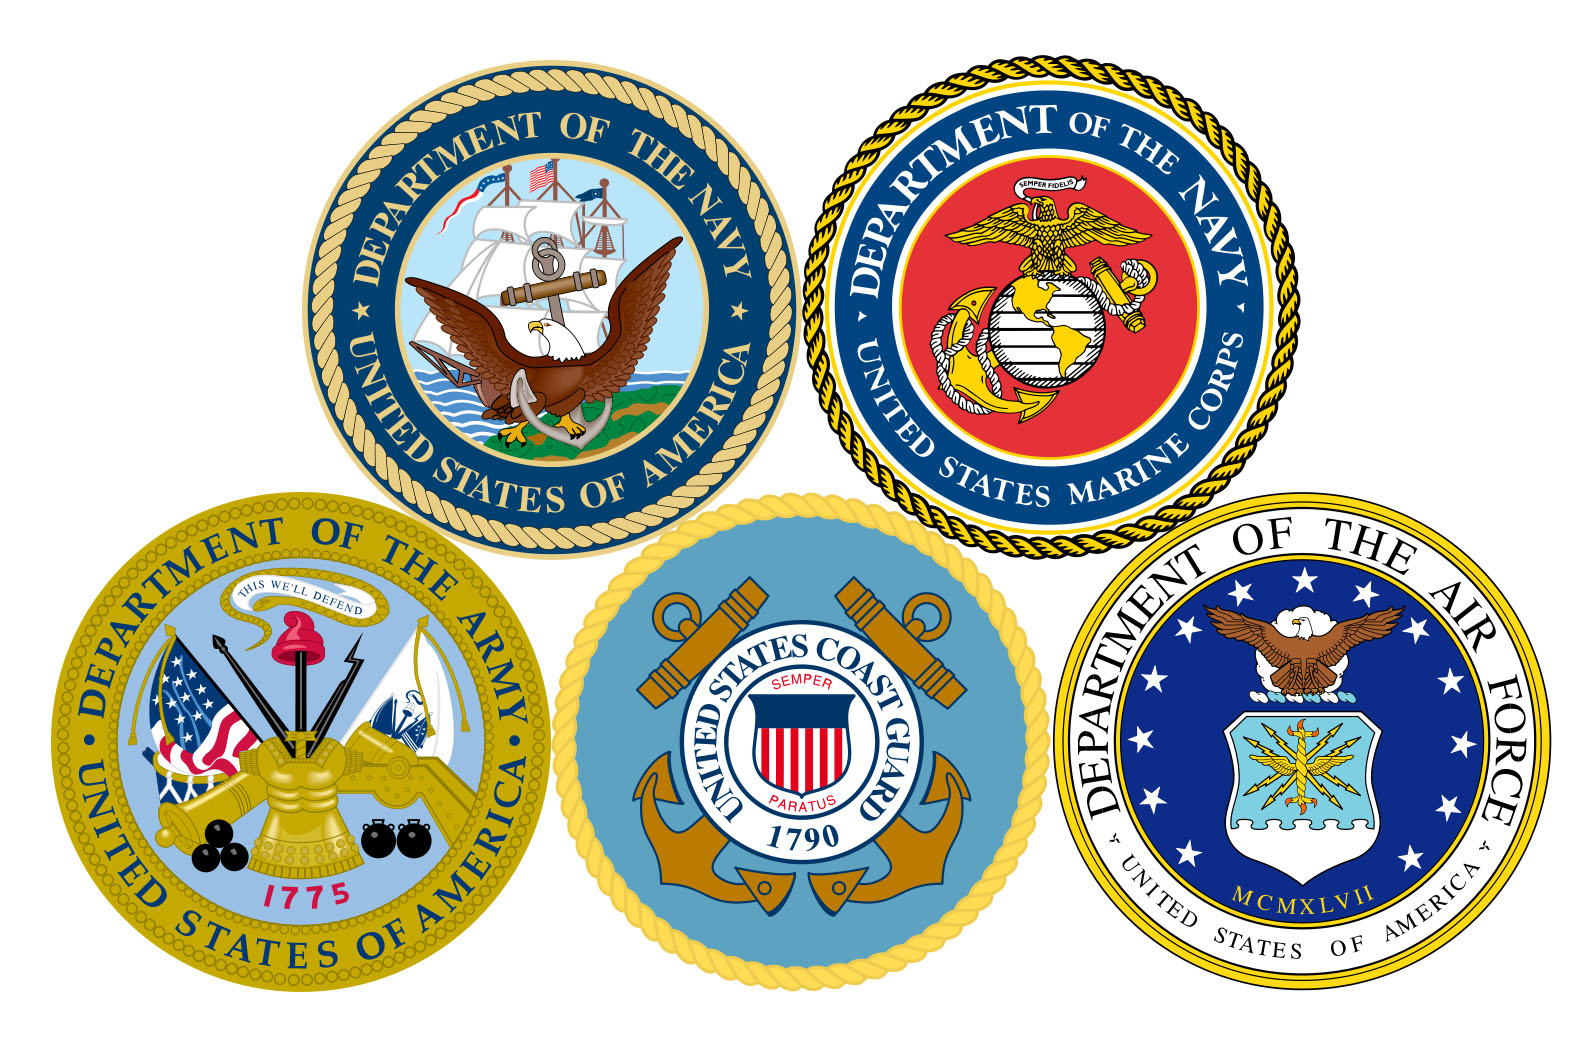 Free forces cliparts download. Army clipart armed force